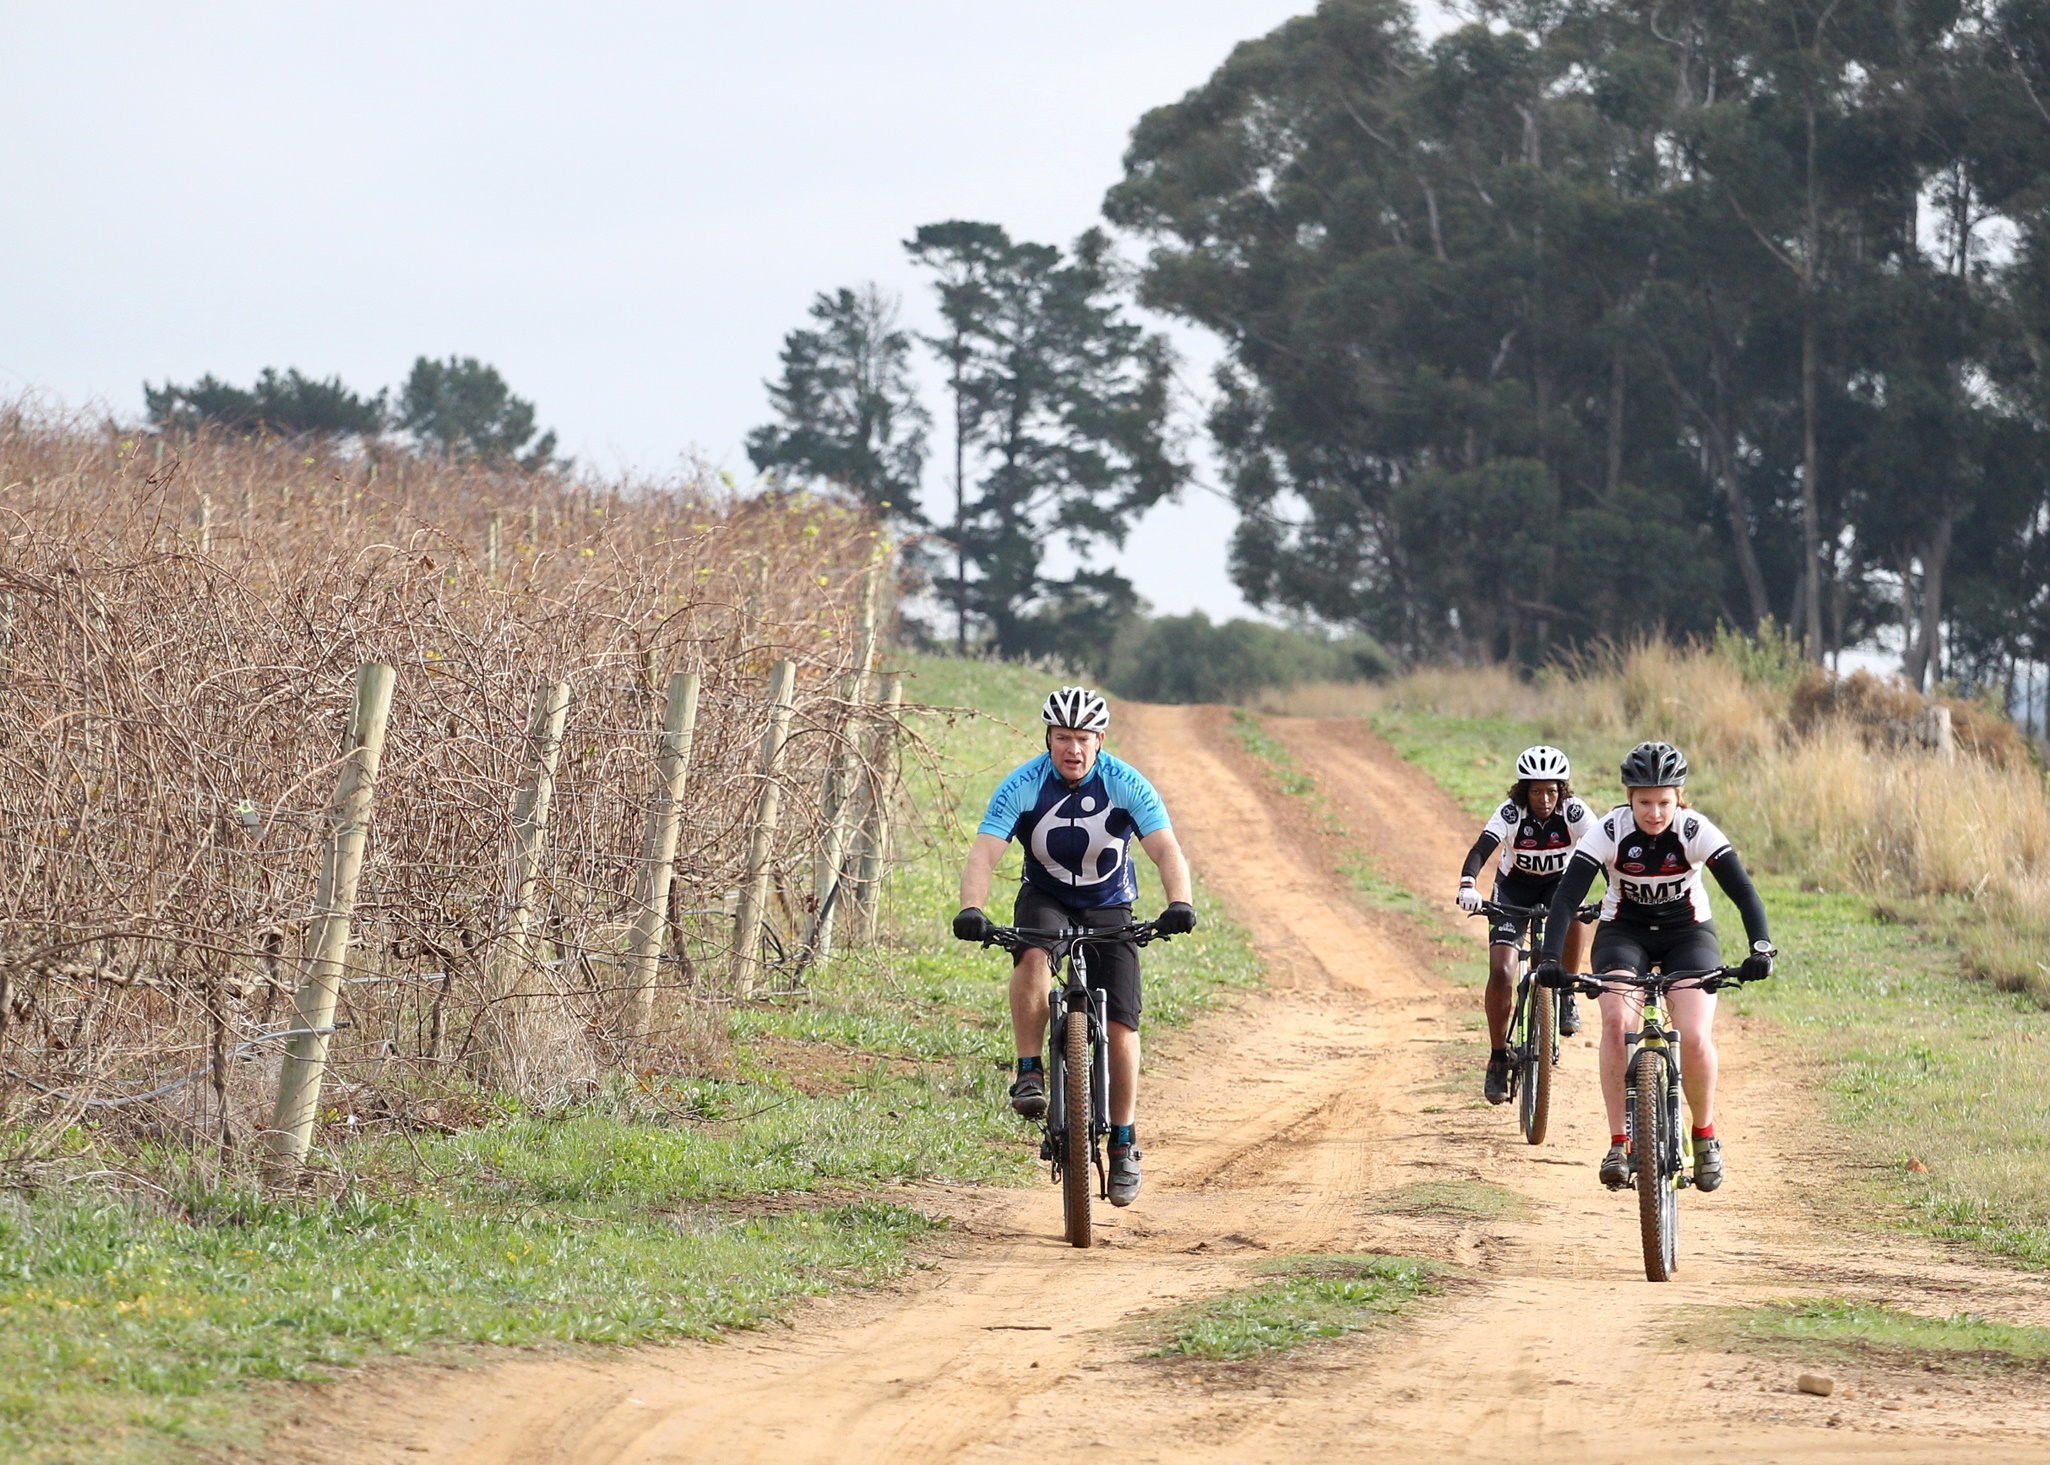 "Becks Blue has entered the mountain biking realm by teaming up with two of the Western Cape's prominent mountain bike races, the Fedhealth MTB Challenge (16 and 17 September 2017) and the BUCO Origin Of Trails (25 and 26 November 2017).  ""Becks Blue is a non-alcoholic beer that delivers on full beer taste,"" says Vilosha Soni, Marketing Manager of Beck's Blue.  ""It's ideal for those consumers that are looking to live life to the fullest without compromise. We would like all entrants to celebrate their achievements by enjoying an ice cold Beck's Blue with their friends after the race."" Seen here:  Mountain bikers enjoying the routes on offer at the picturesque Boschendal Wine Estate in the build up to the Fedhealth MTB Challenge (16 and 17 September 2017).  Photo Credit:  Luke Walker"